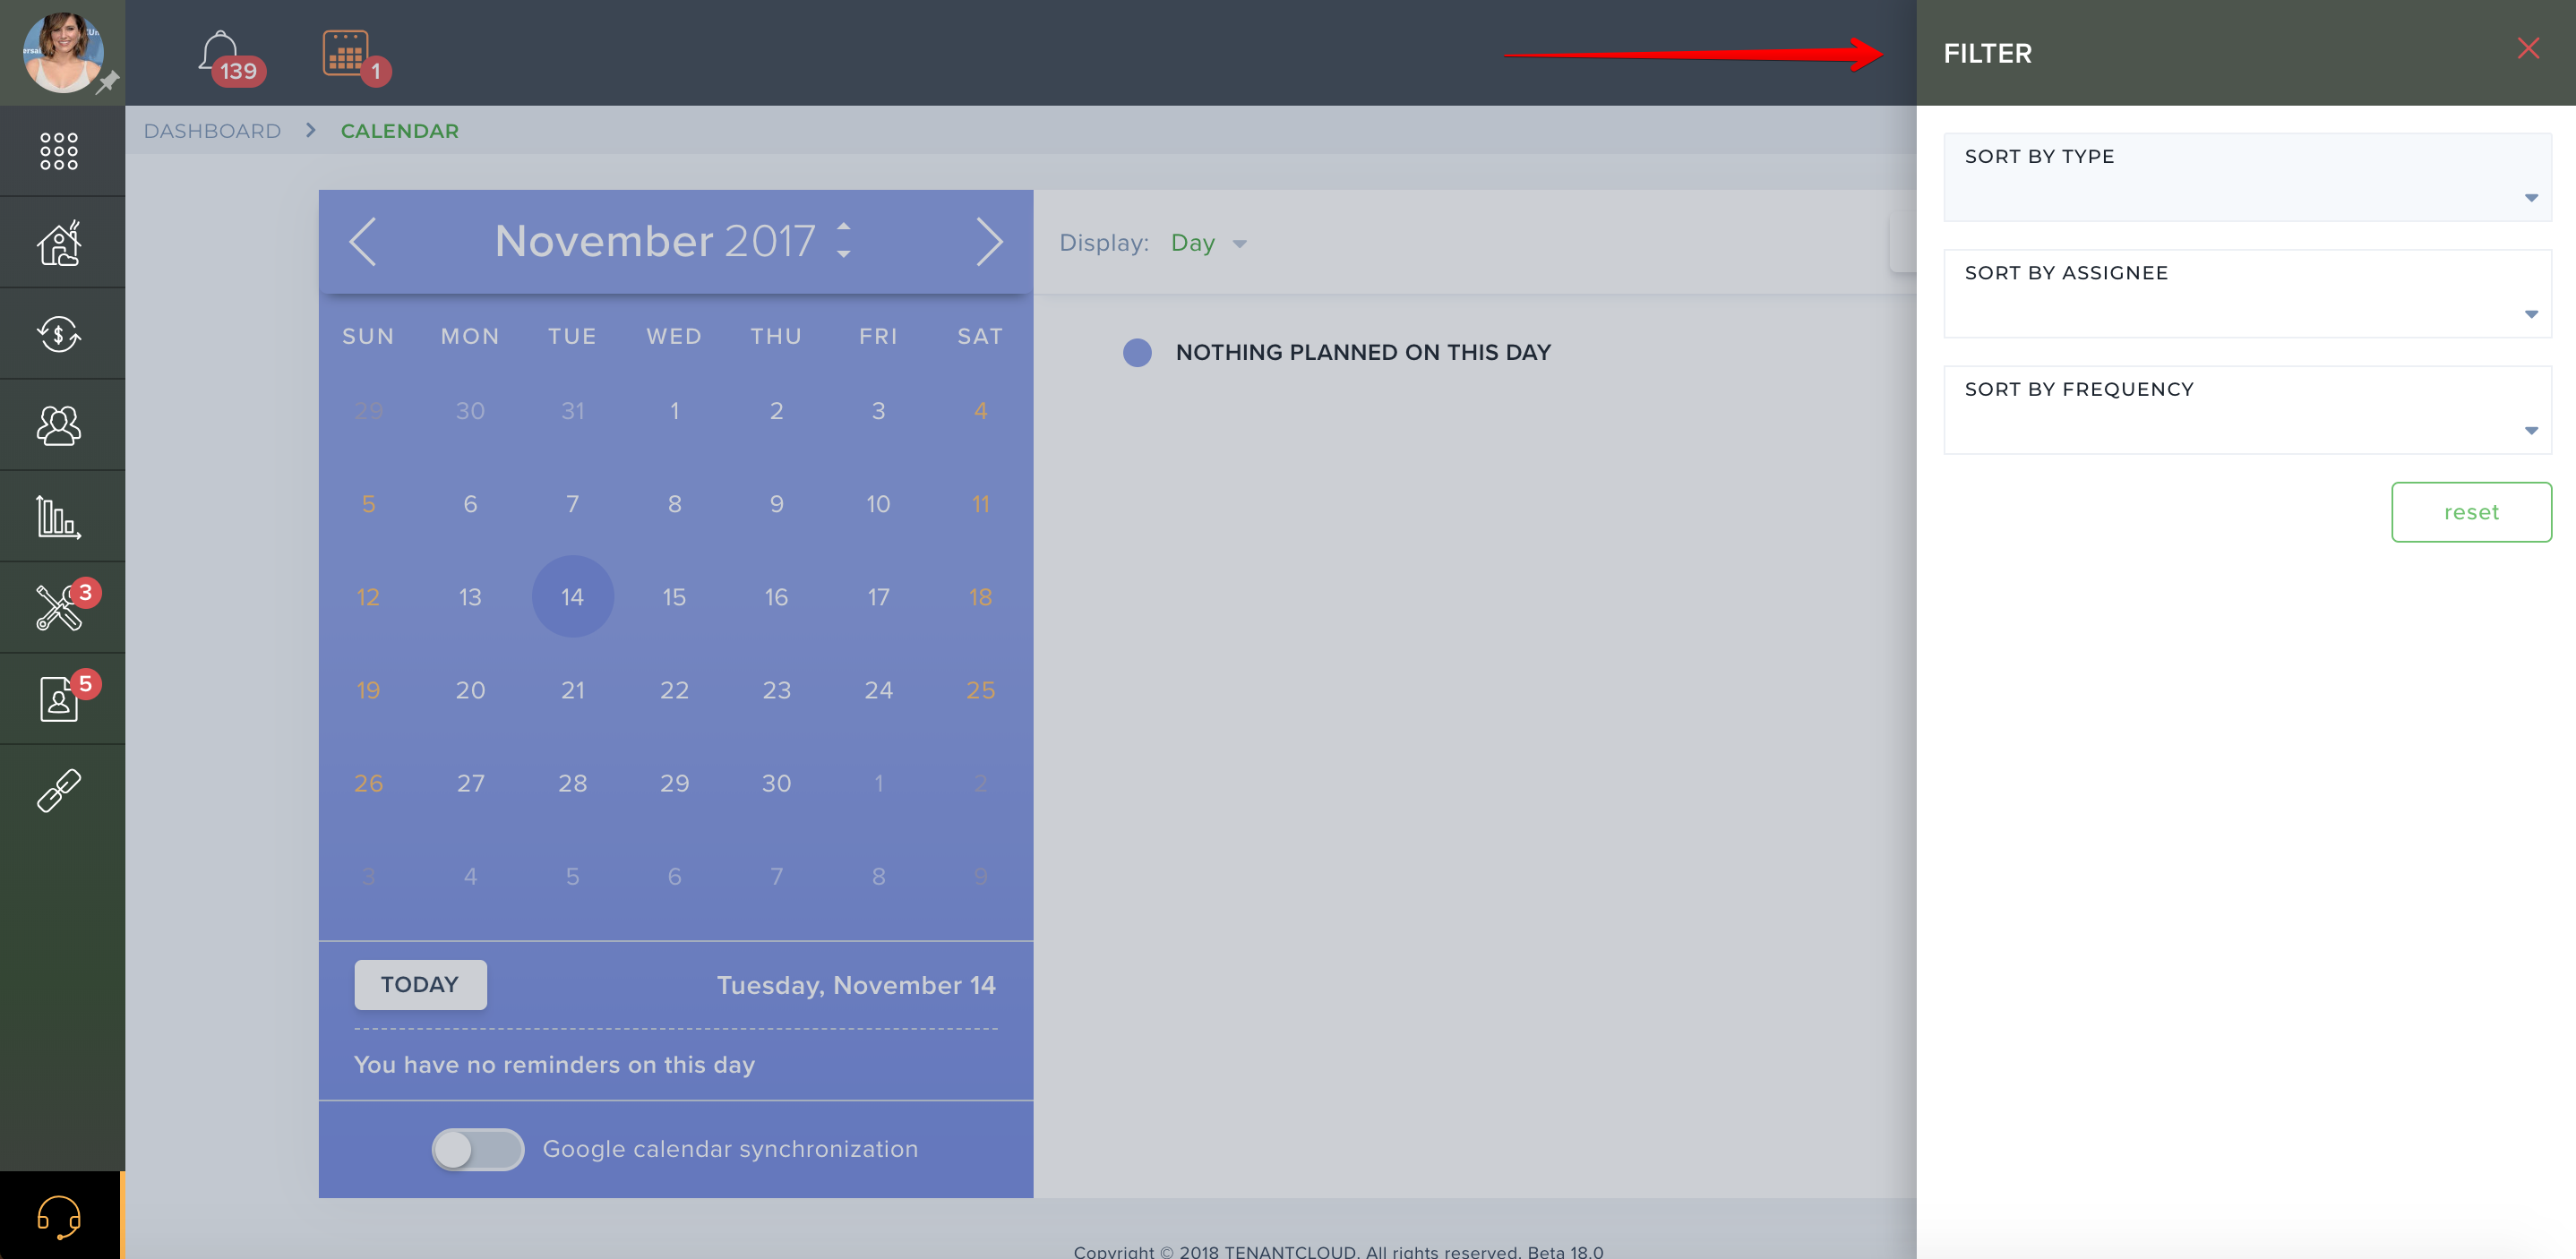 How do I view calendar items?